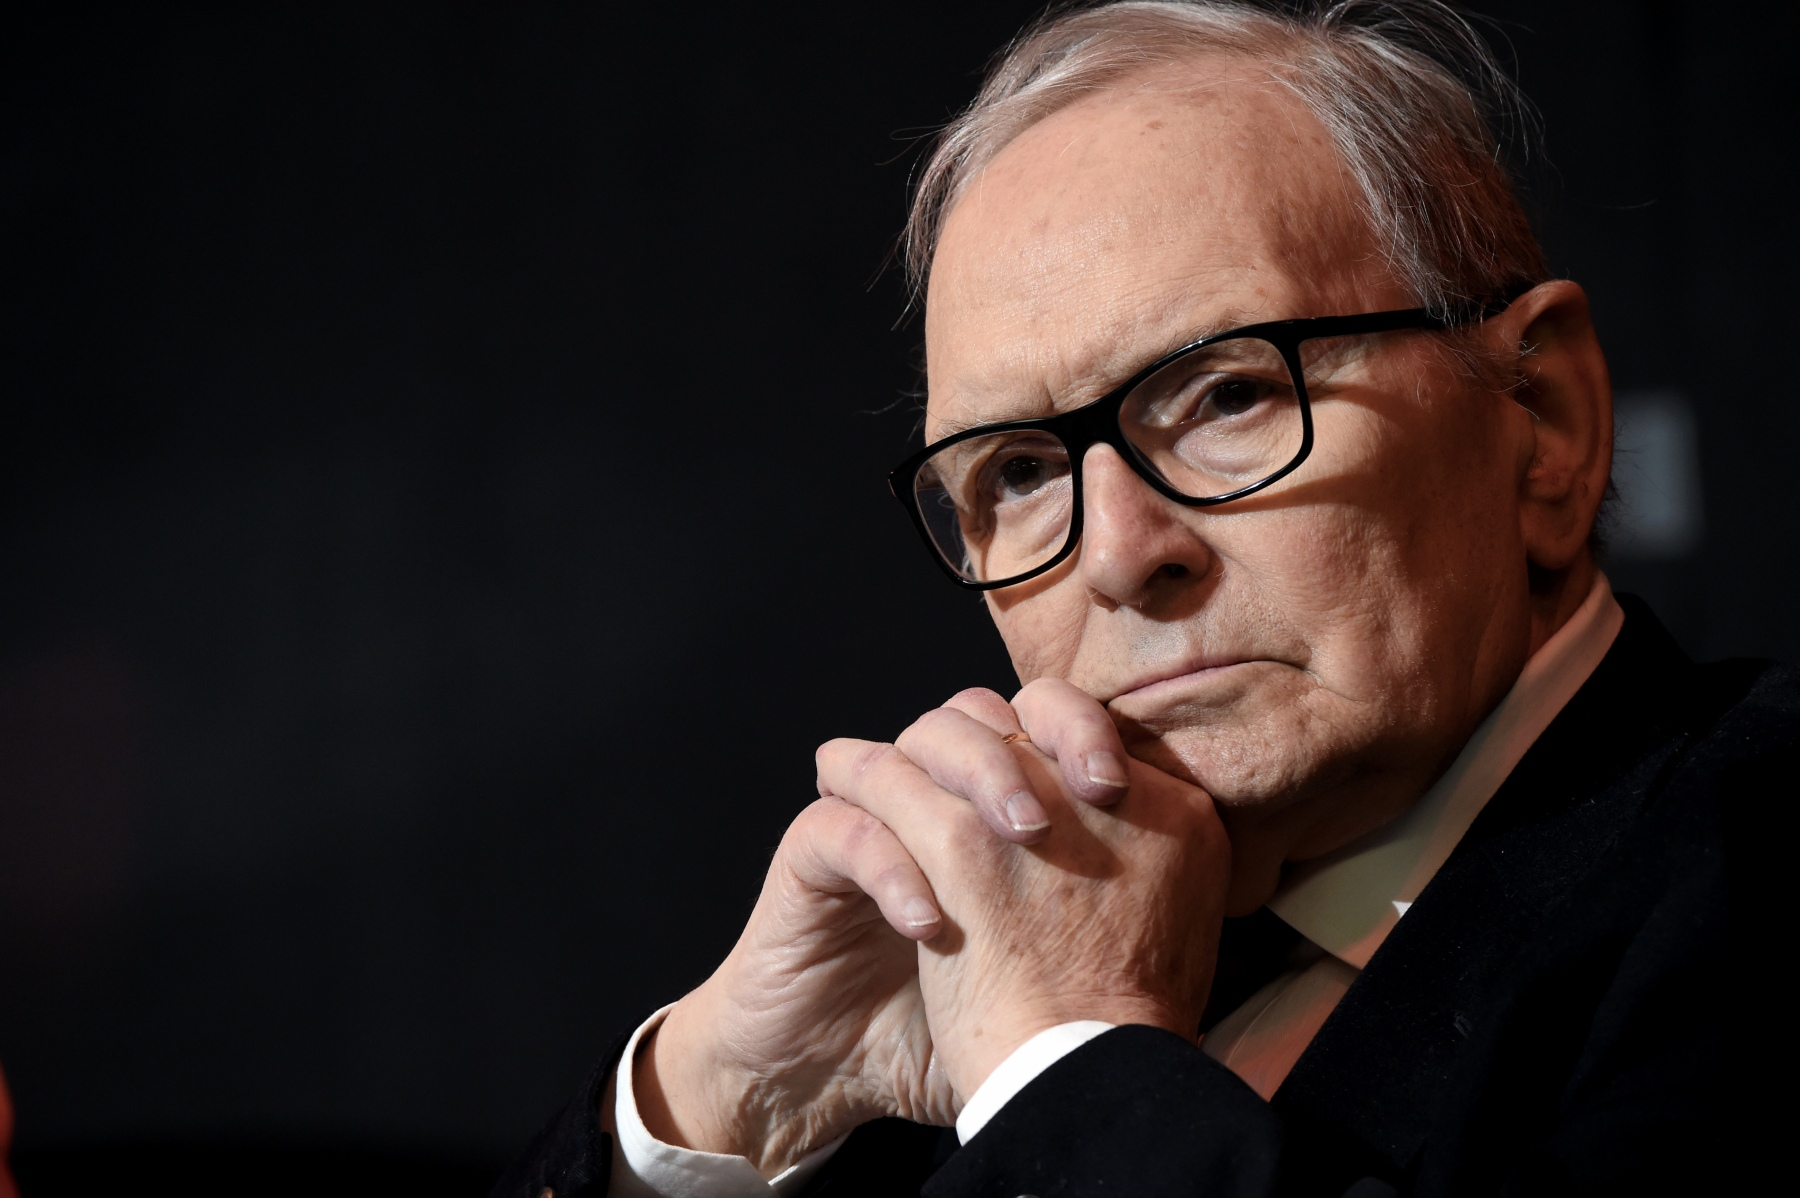 Ennio Morricone attends the Honorary Degree at Accademia di Belle Arti di Brera on February 27, 2019 in Milan, Italy.  (Photo by Pier Marco Tacca/Getty Images)